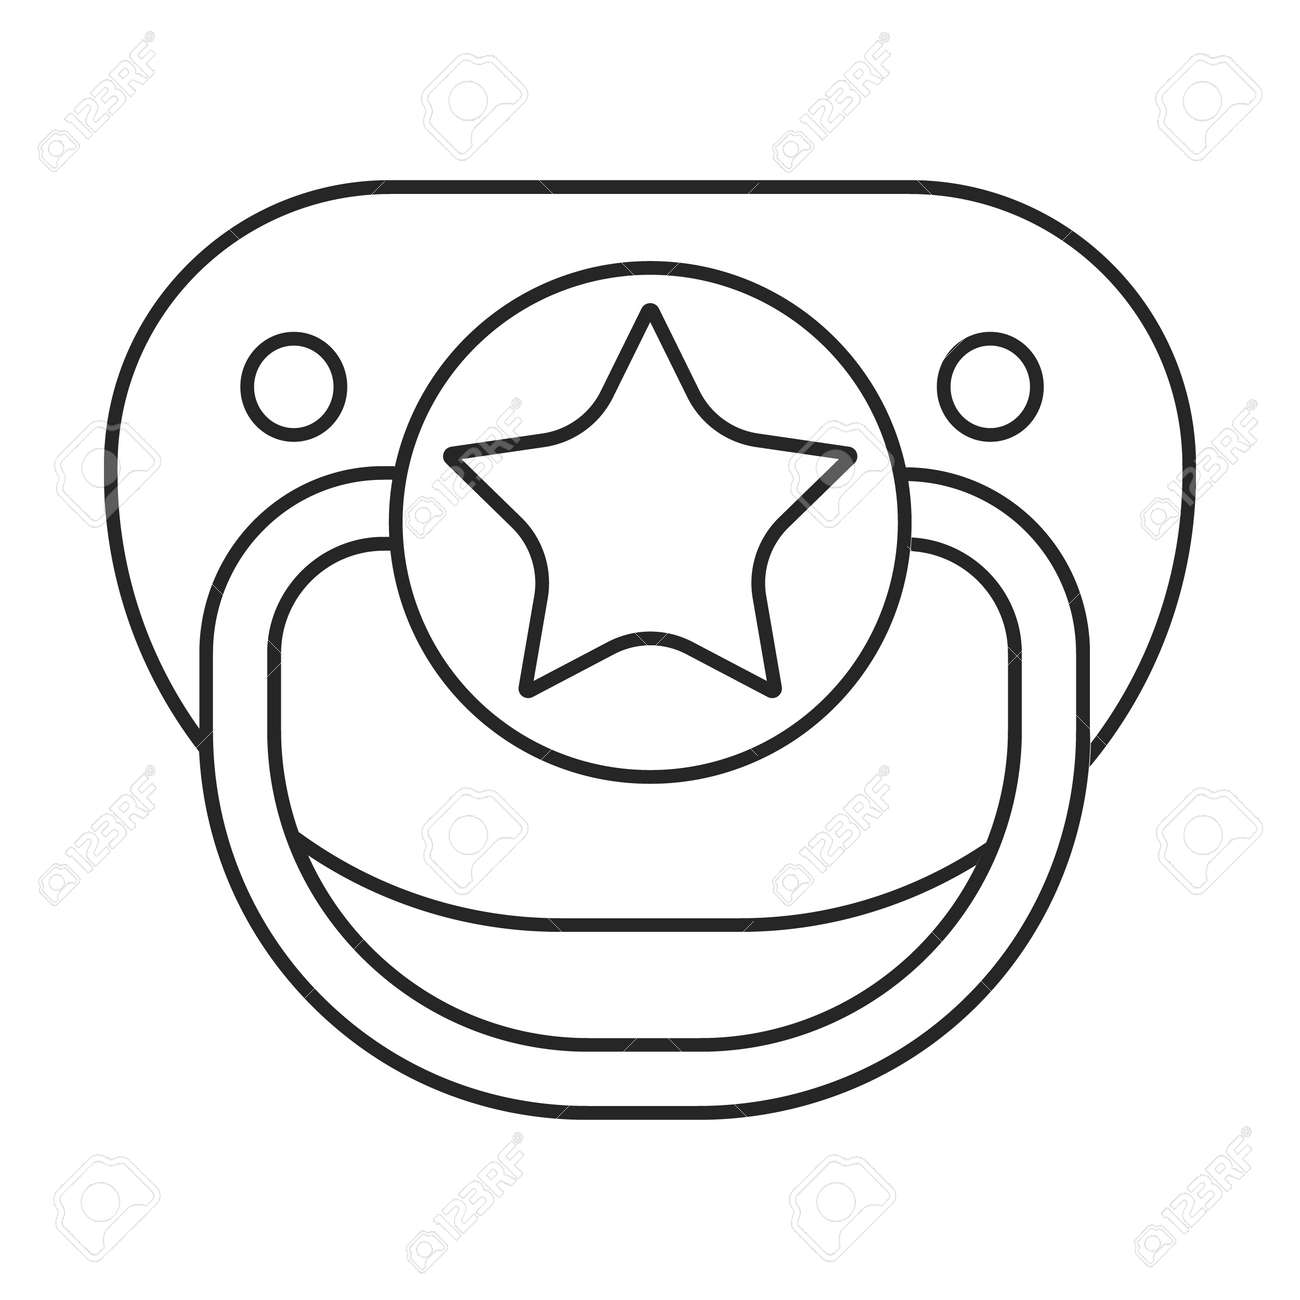 Dummy pacifier vector outline icon. Vector illustration baby on white background. Isolated outline illustration icon of baby dummy pacifier. - 167978044